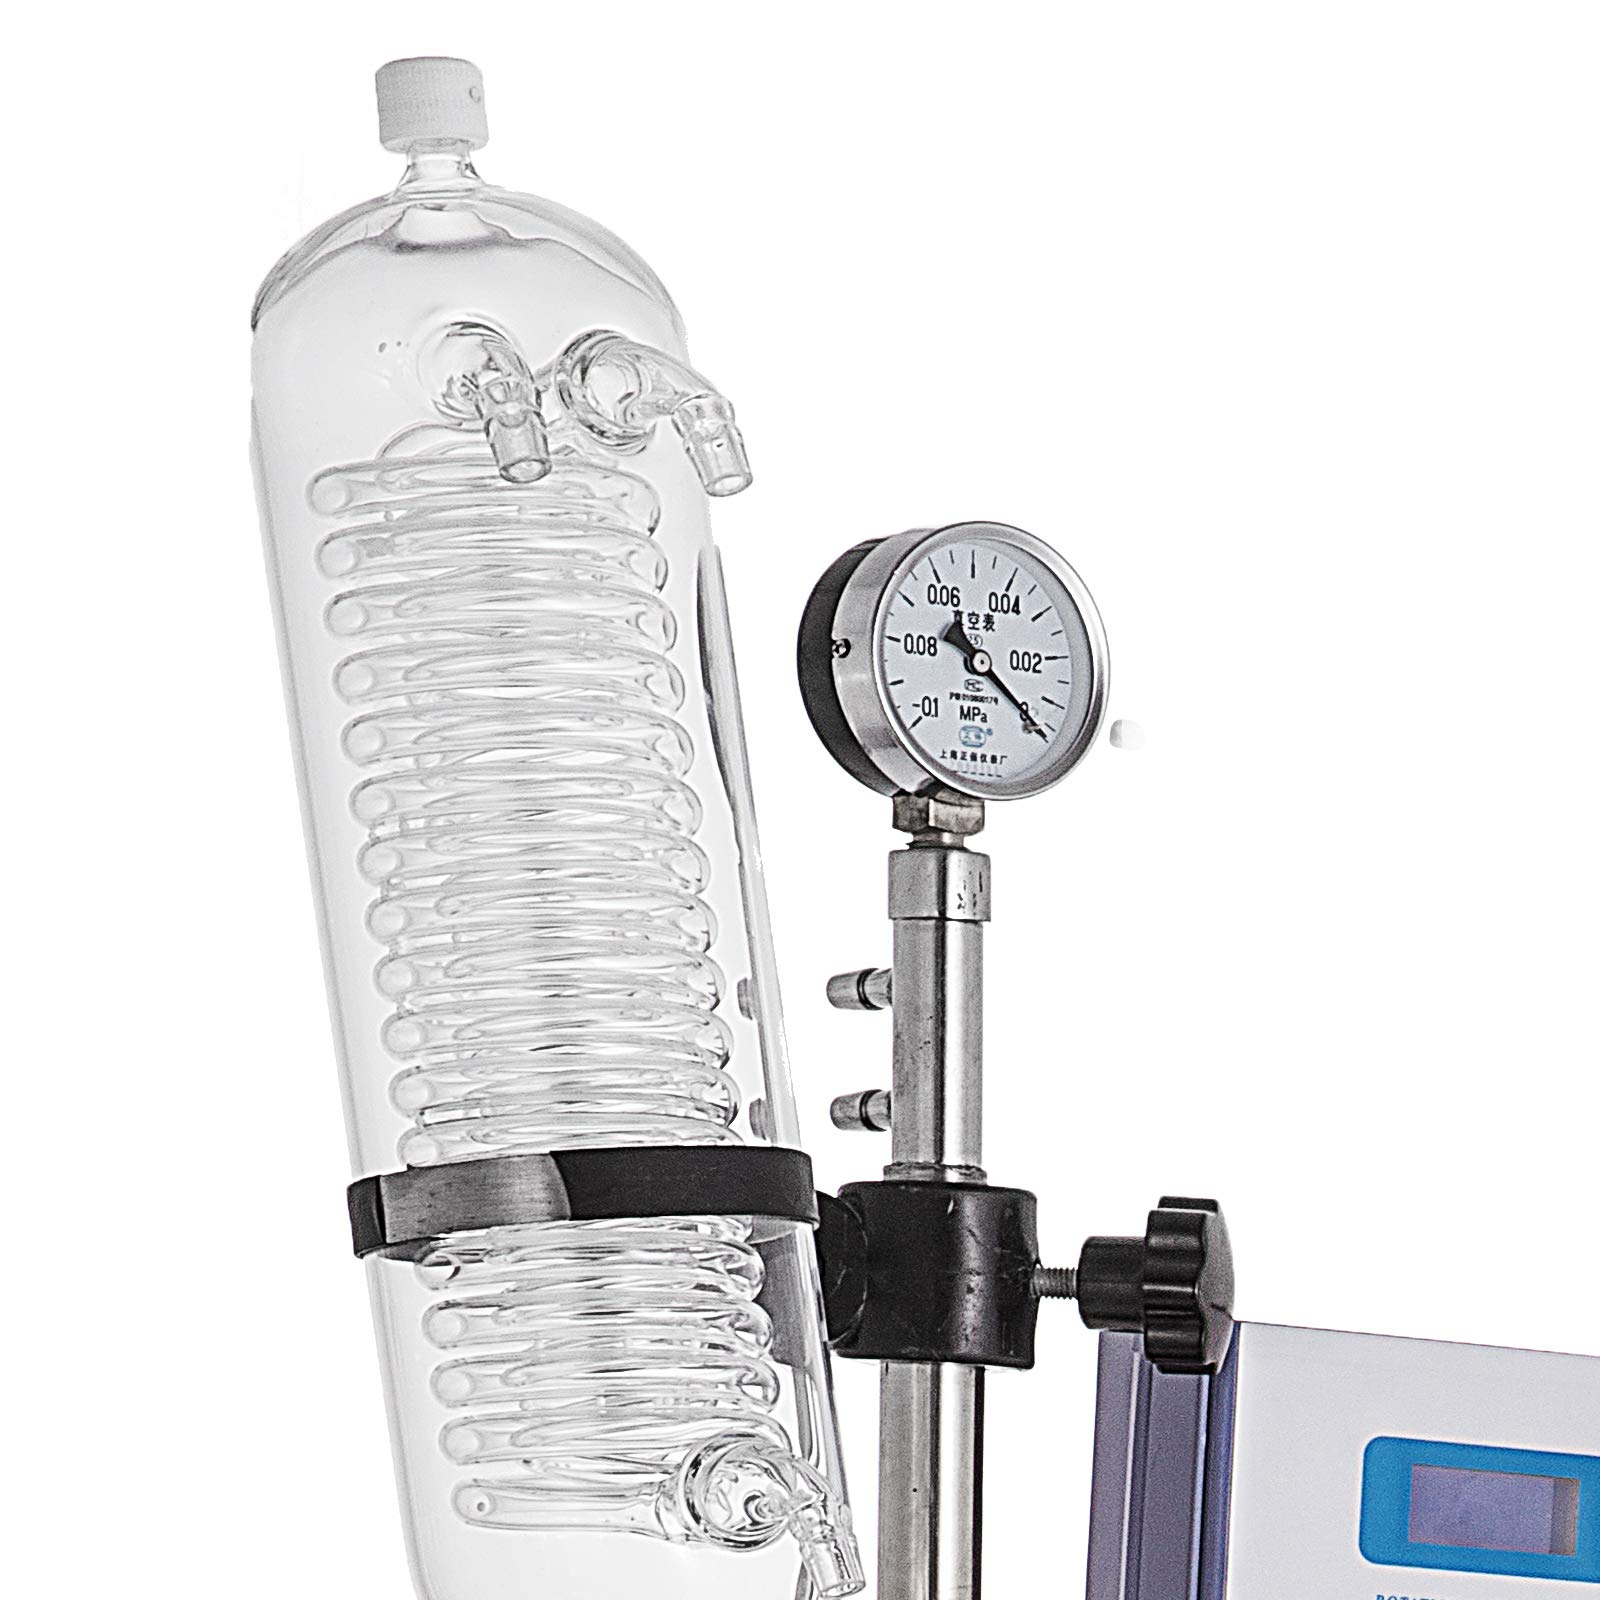 Mophorn 2L Rotary Evaporator R201D Lab Evaporator Rotary Evaporator Manual Lifting Rotavapor with LCD Screen 5-140rpm Professional Rotary Evaporator Set(2L, 5-140rpm) by Mophorn (Image #6)